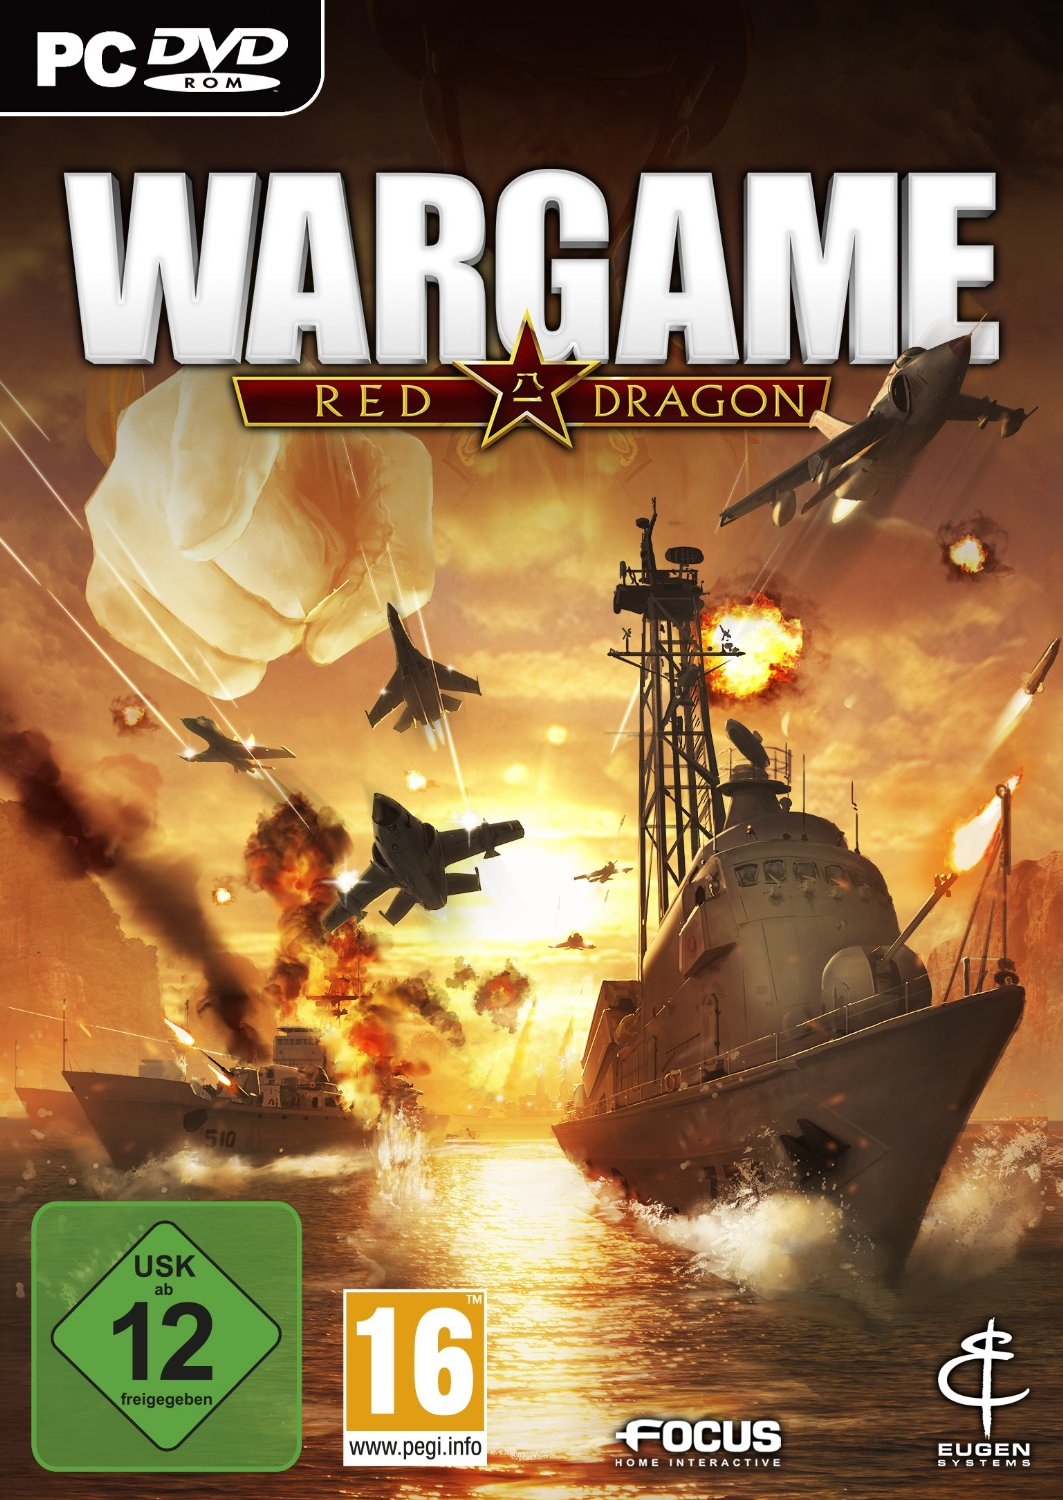 https://rozup.ir/up/narsis3/Pictures/Wargame-Red-Dragon-pc-cover-large.jpg